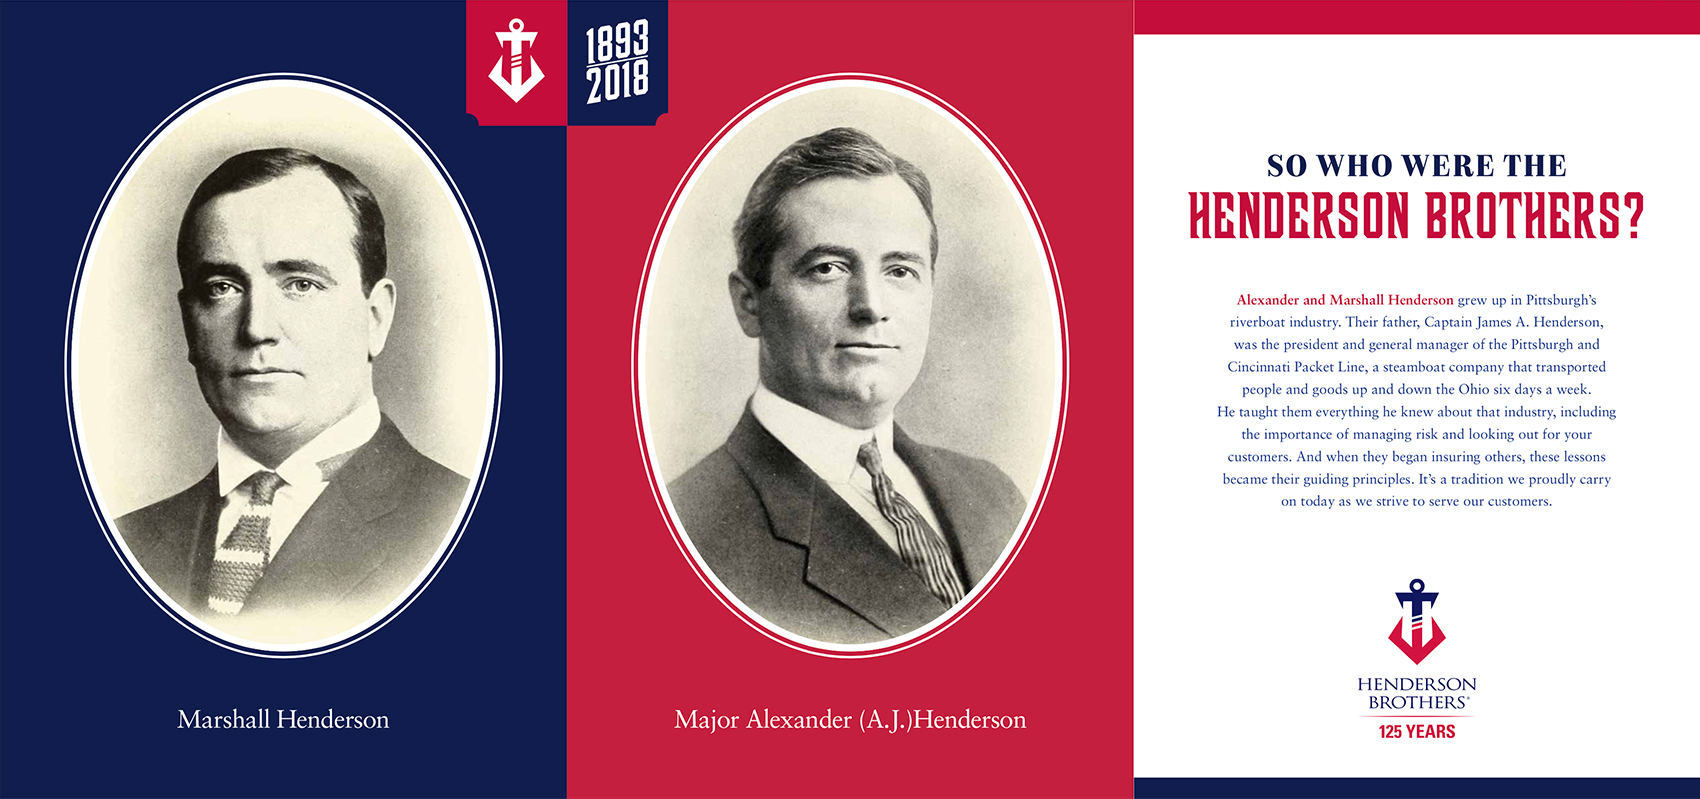 Henderson Brothers 125th Anniversary